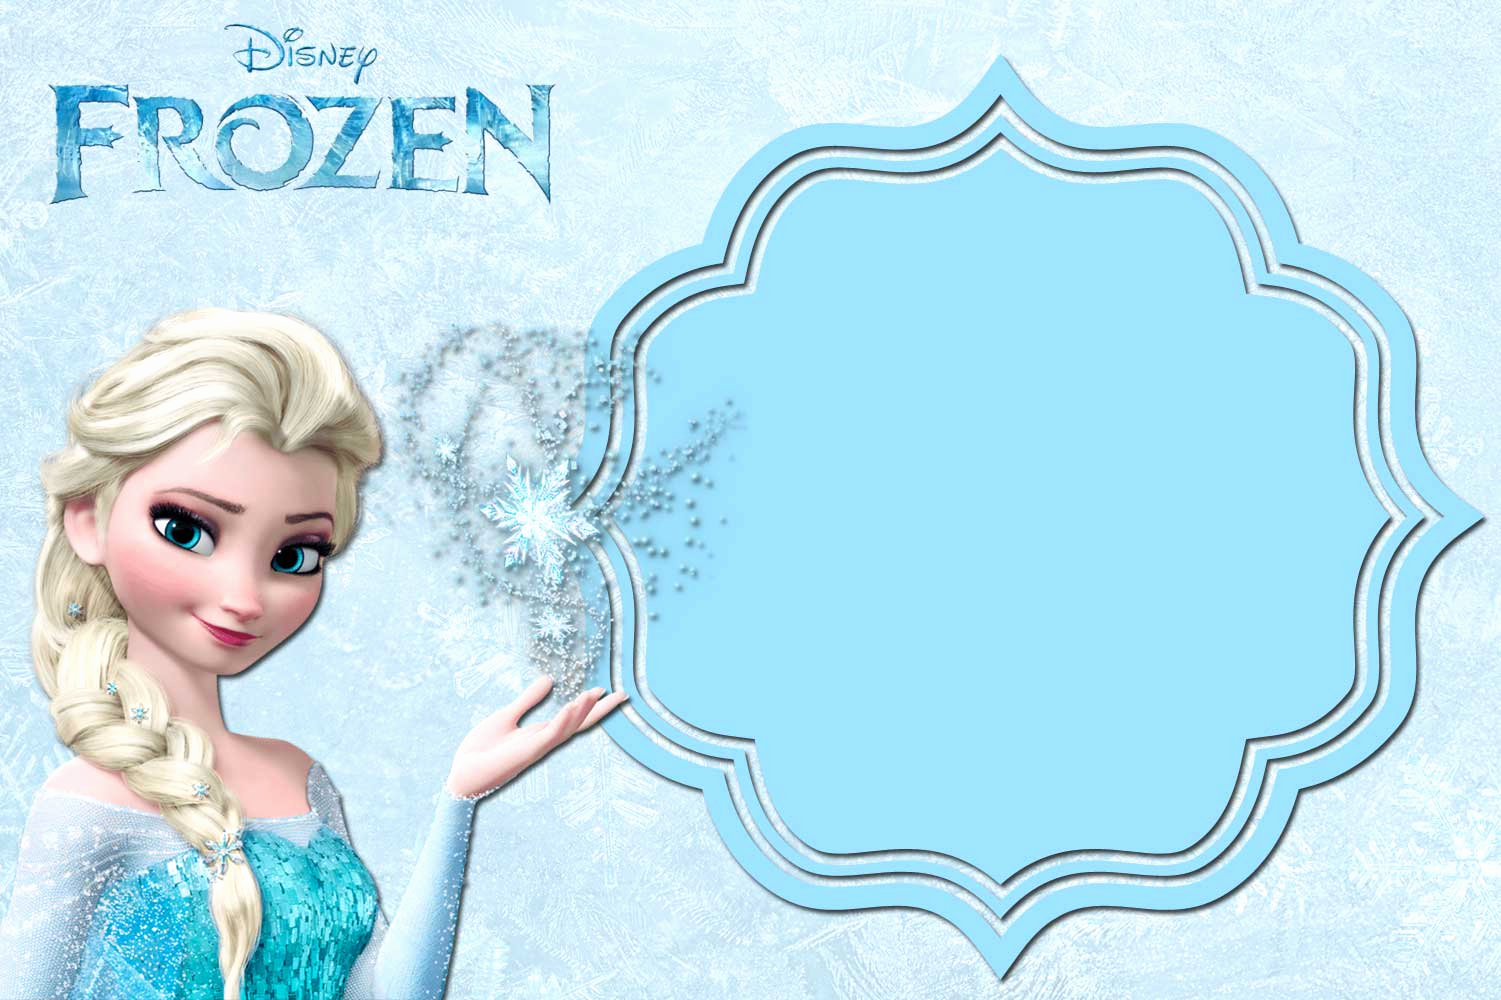 Frozen Birthday Party Invitation Template Awesome Free Printable Frozen Anna and Elsa Invitation Templates